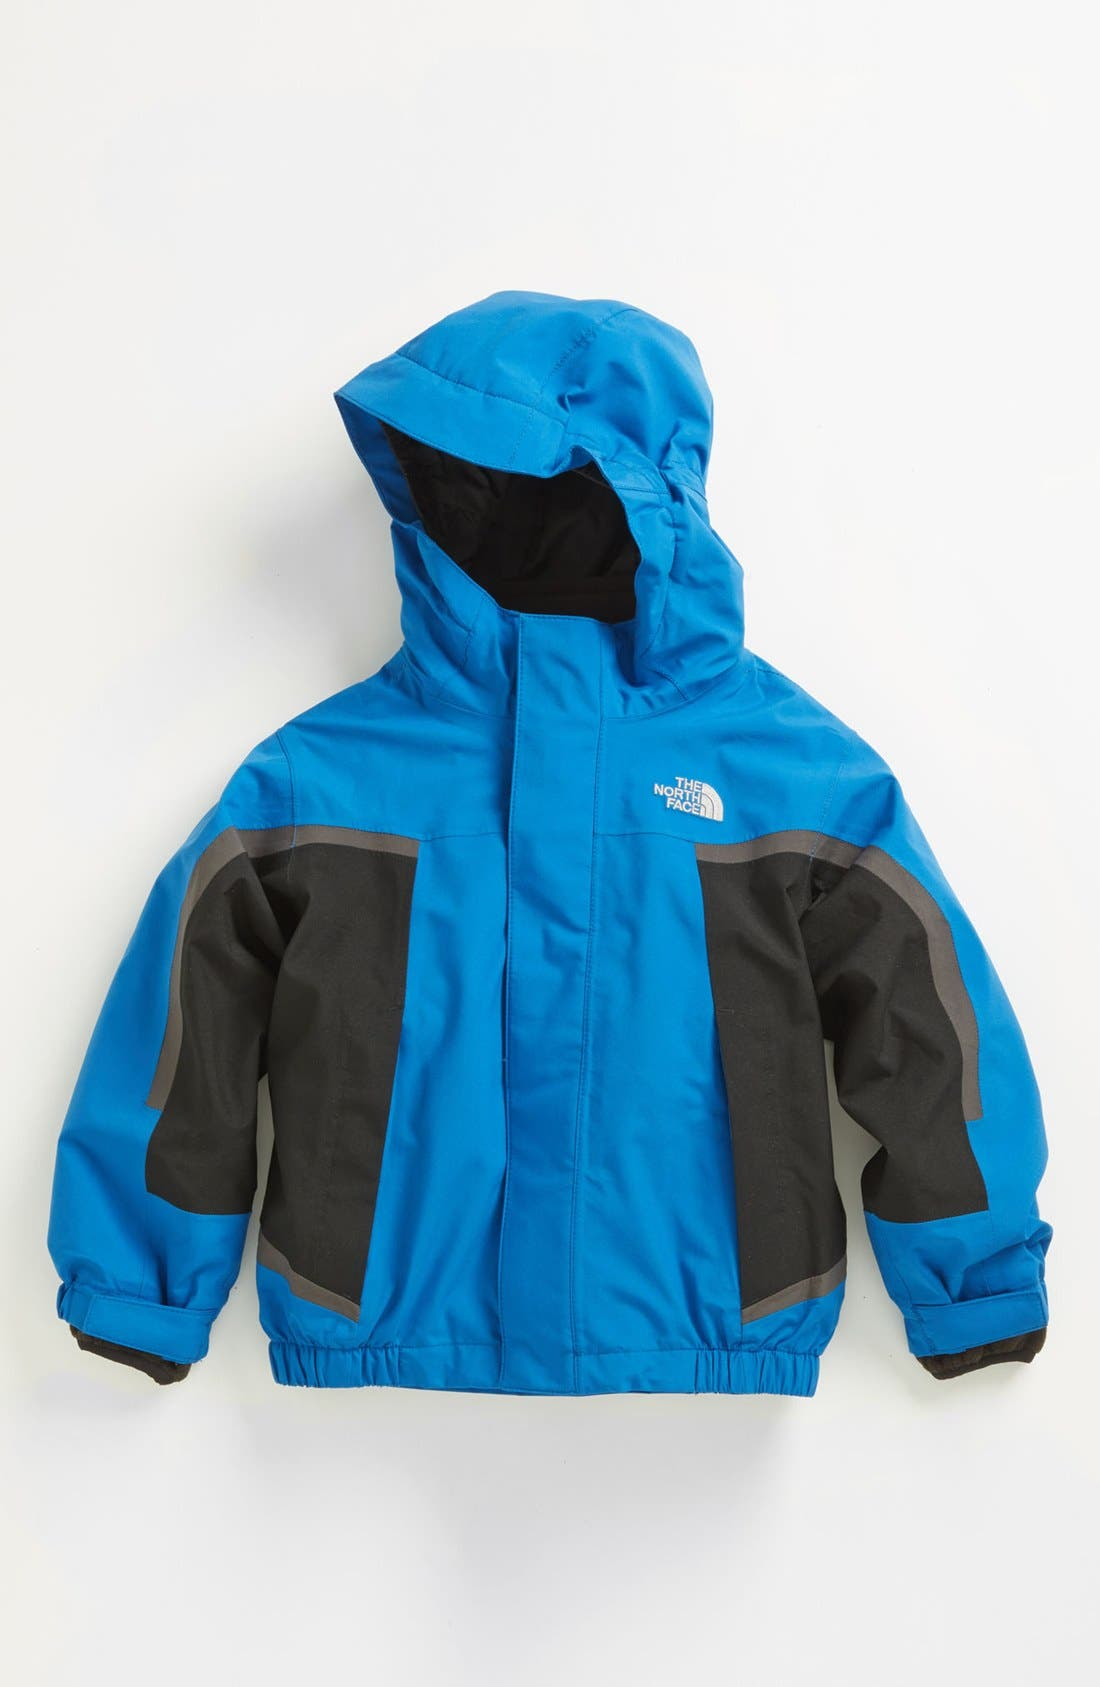 Main Image - The North Face 'Nimbostratus' Jacket (Toddler Boys)